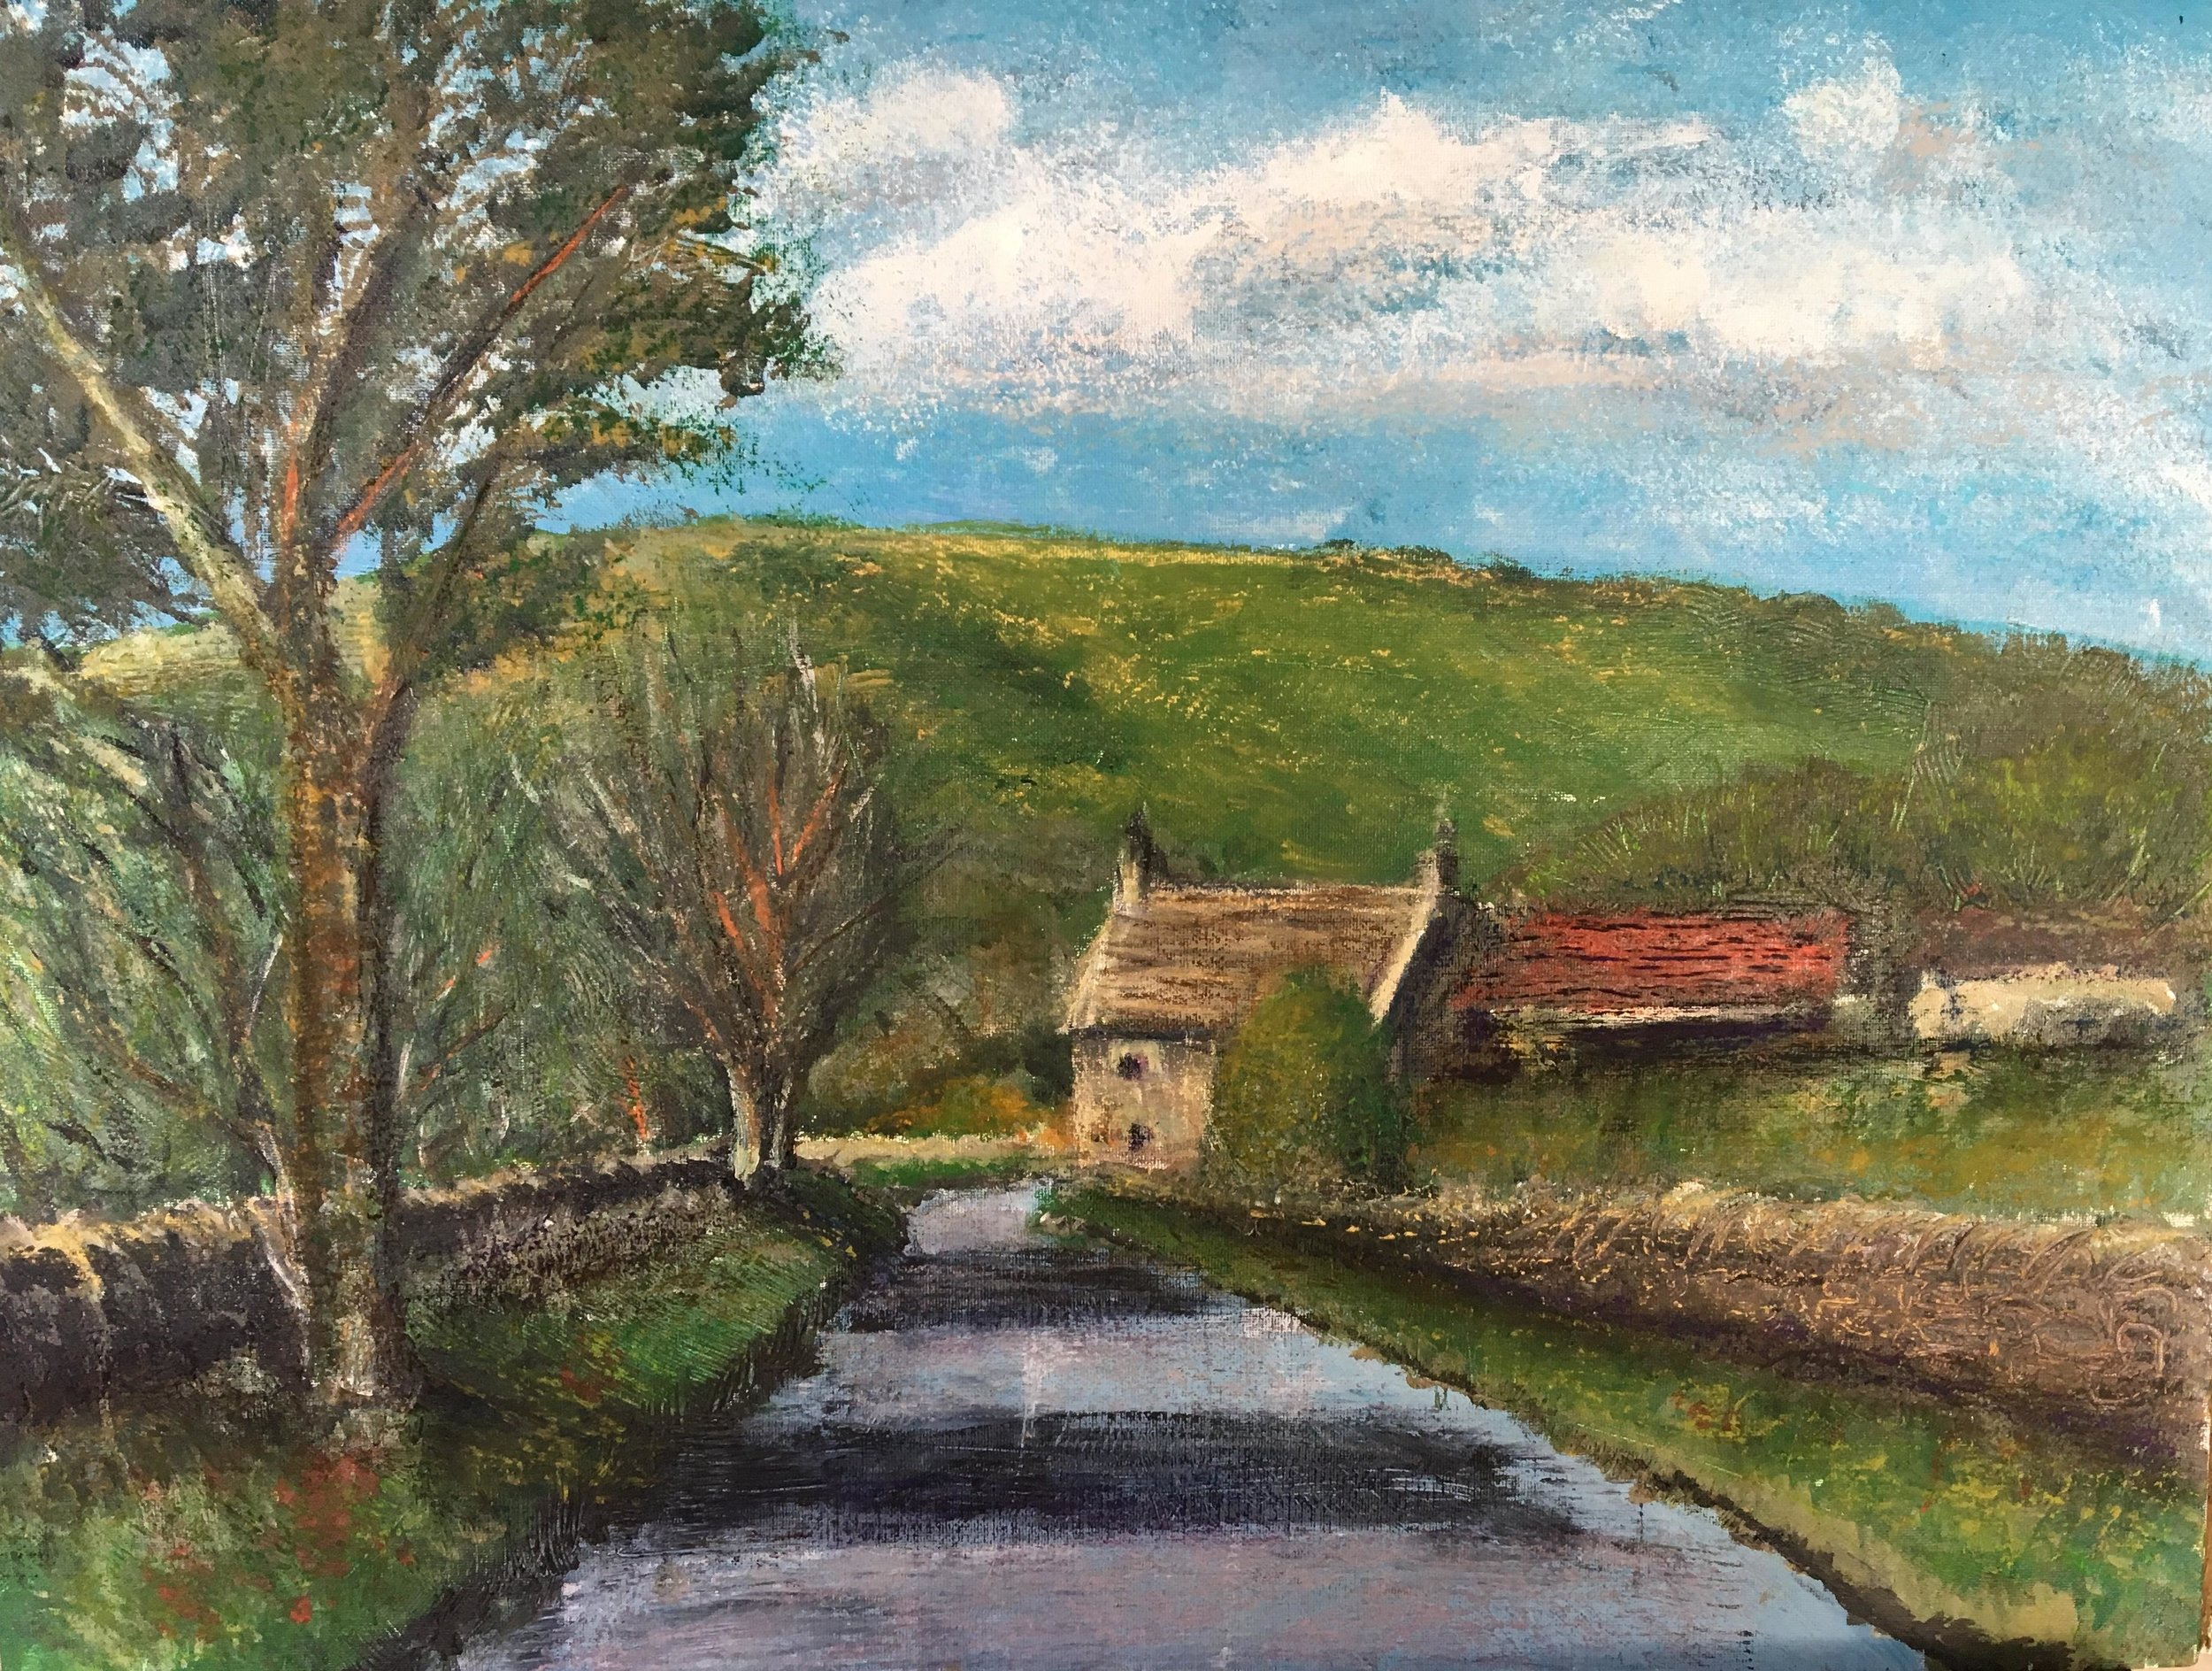 Print 13 - Spring in the Peak District - Size: 313 x 236